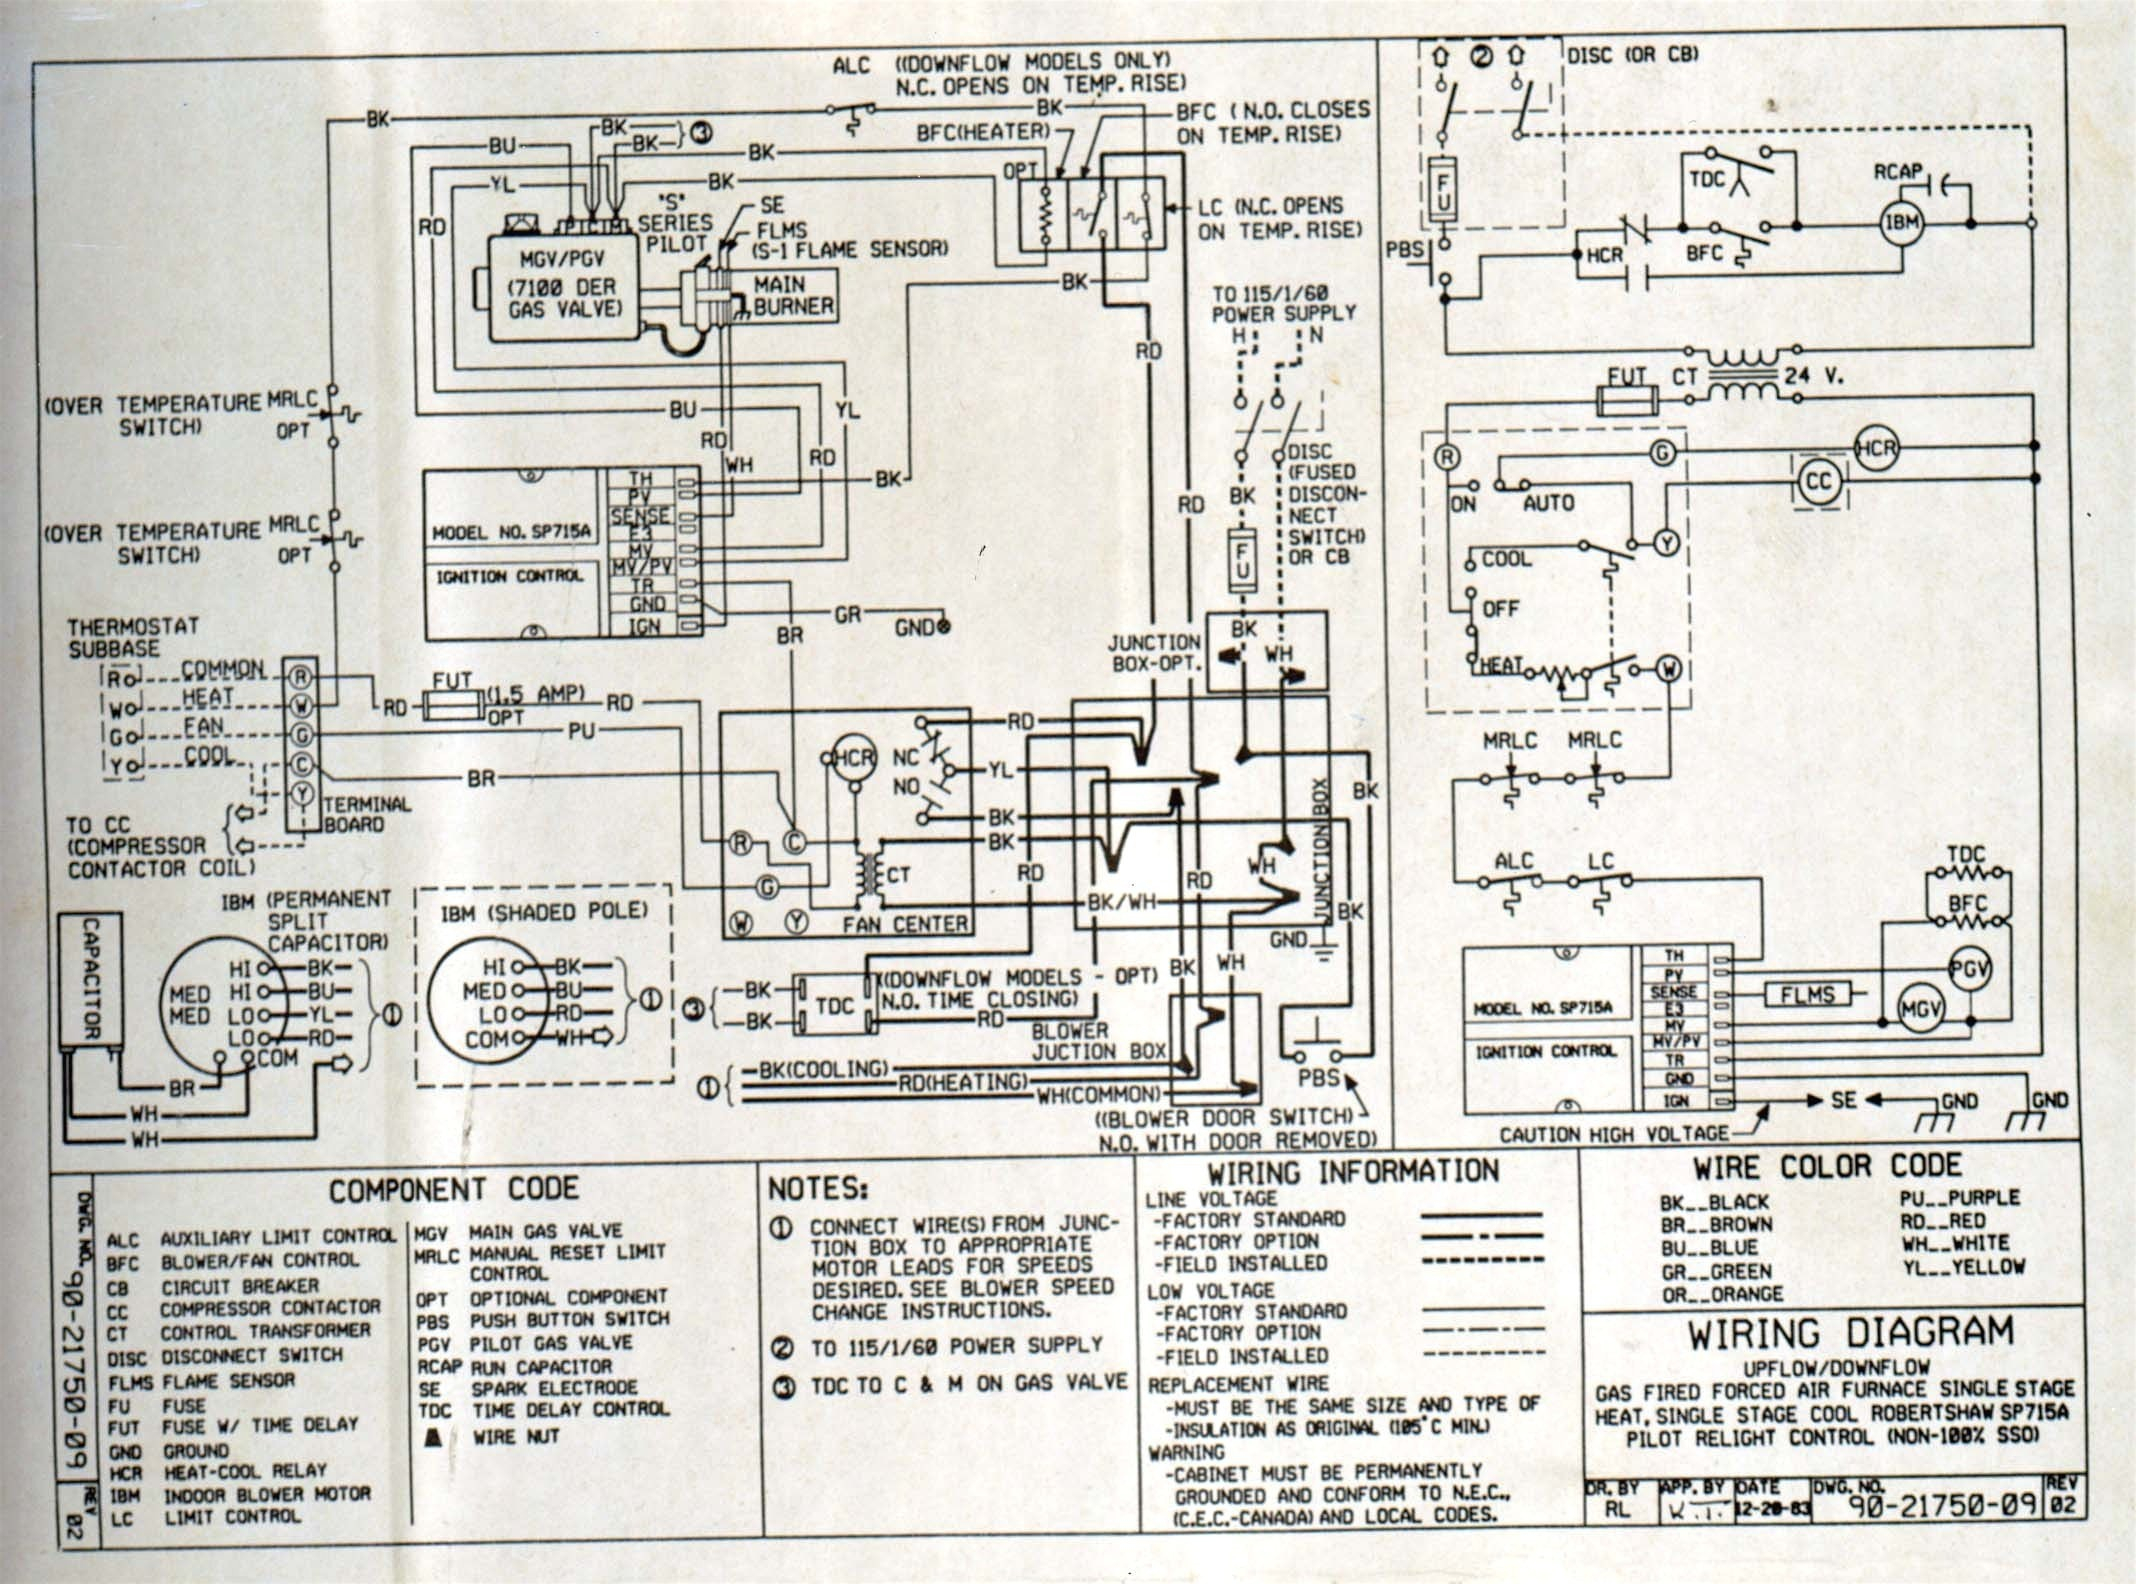 goodman air handler wiring diagram Collection-Wiring Diagram Hvac thermostat New Goodman Gas Pack Wiring Diagram Data Exceptional Air Handler 9-k